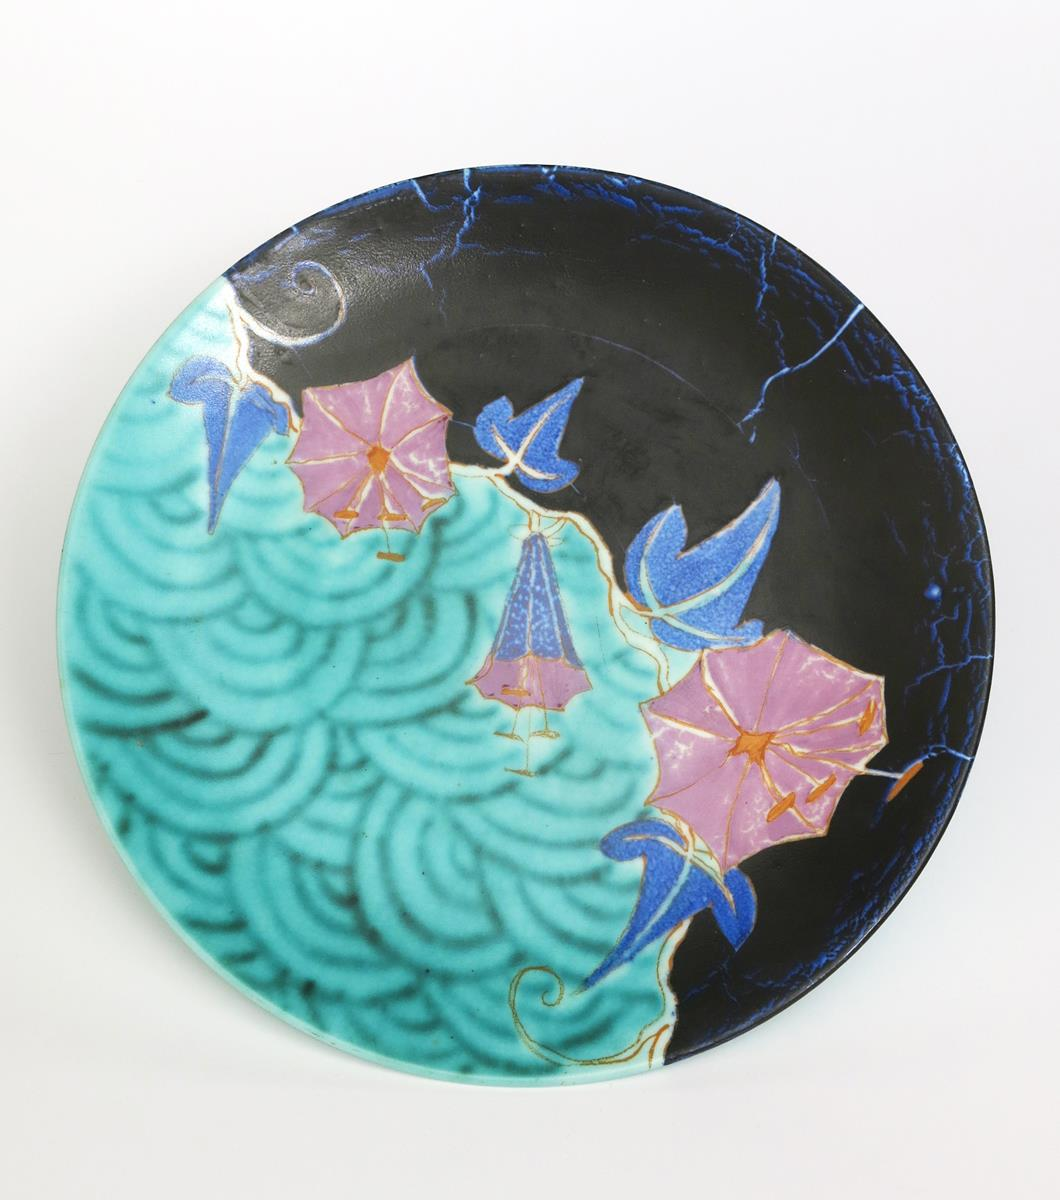 'Inspiration Bouquet' a Clarice Cliff Bizarre wall plaque, painted in colours on a turquoise